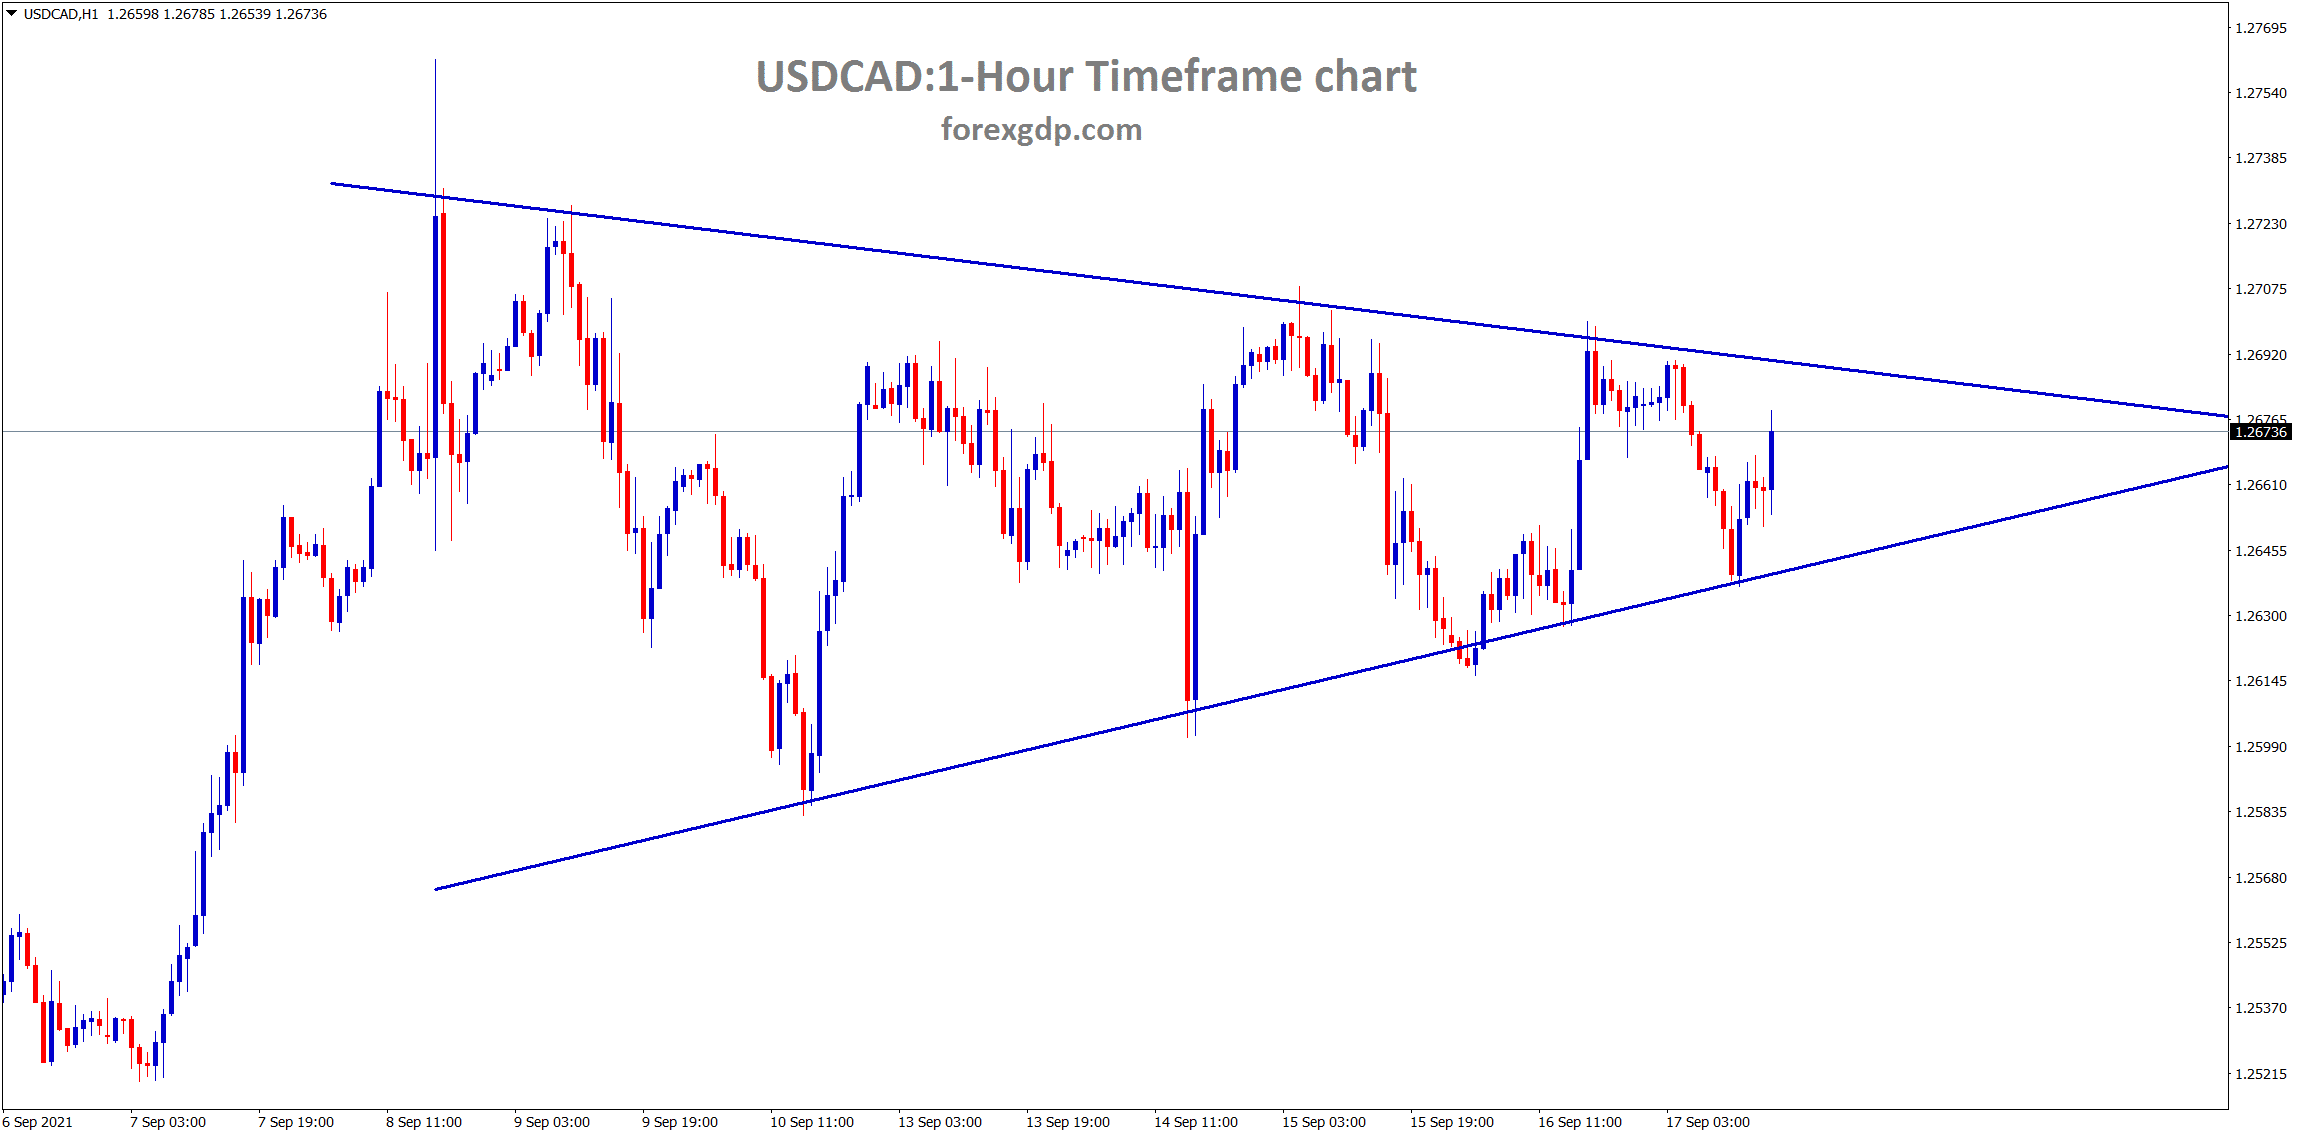 USDCAD has formed a clear symmetrical triangle pattern wait for the breakout as the triangle getting narrower